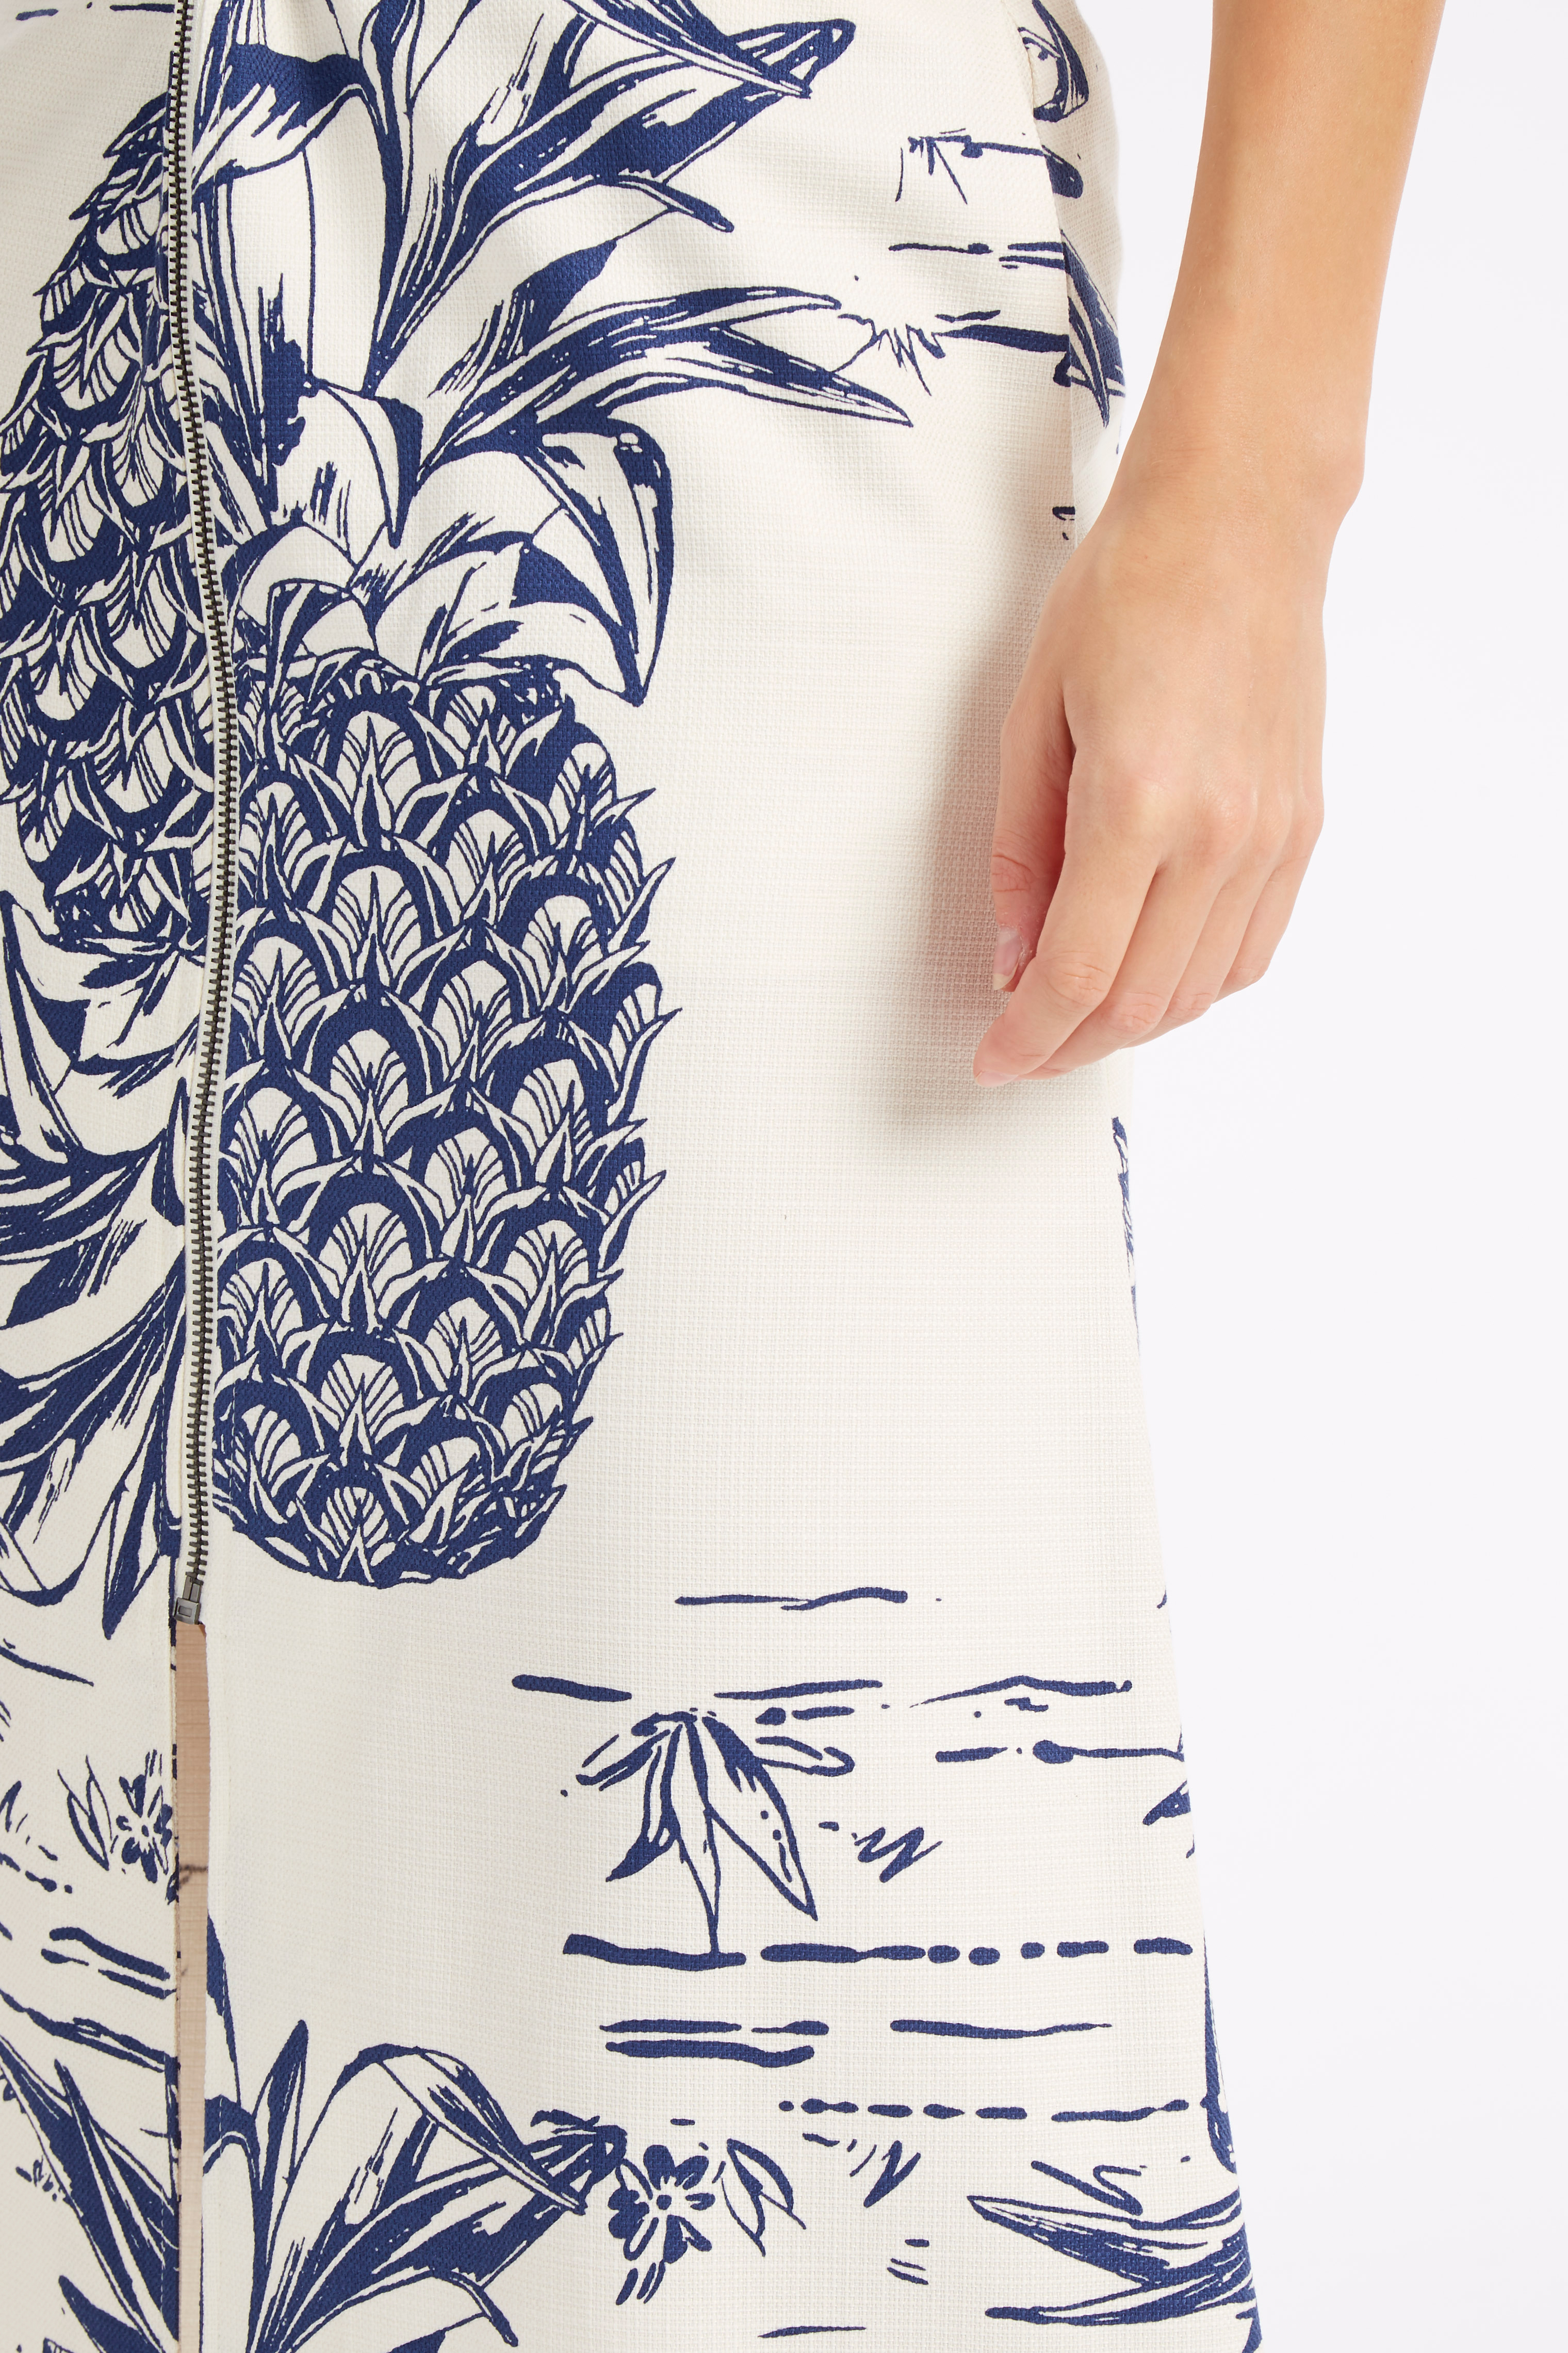 Boutique 1 - SEA NY - Ivory Pineapple Skirt | Boutique1.com